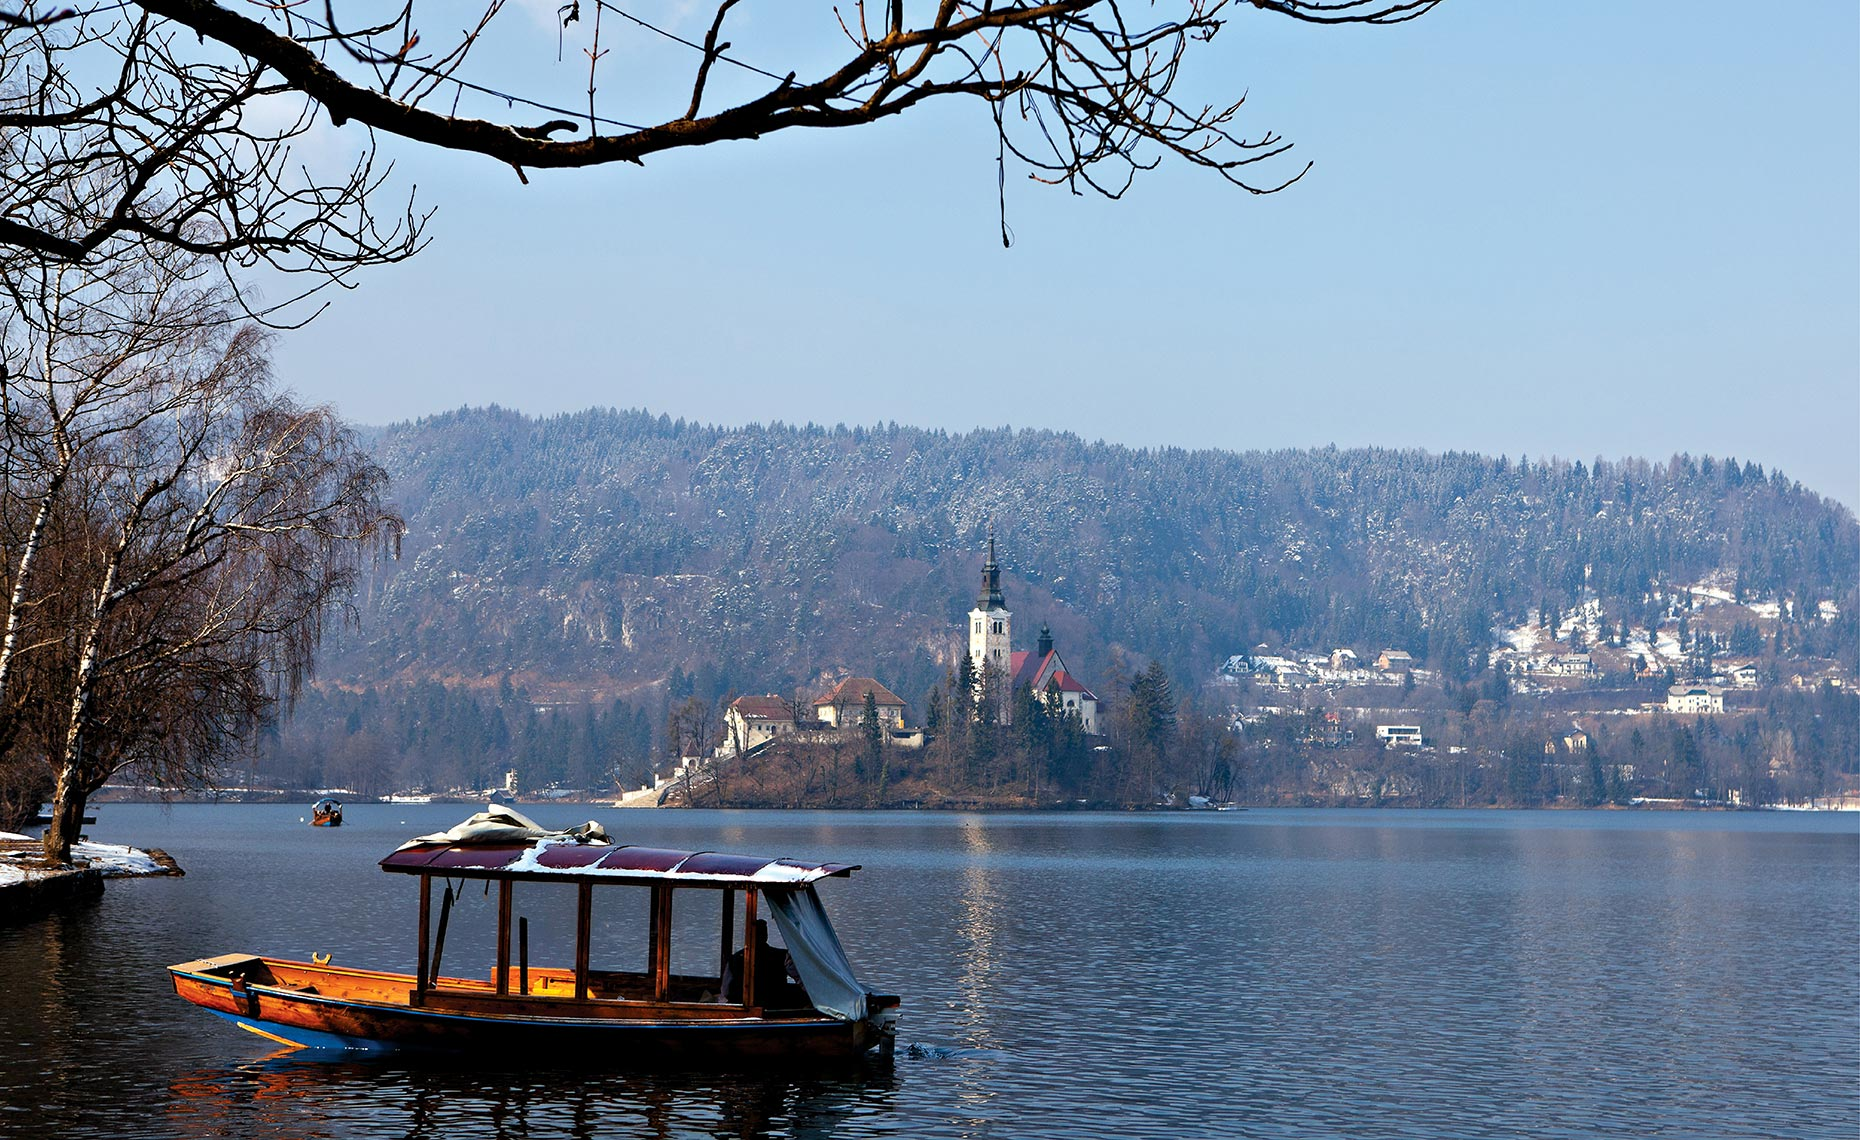 56_Vogel_Lake_Bled_Slovenia_Environment_Landscape_Chris_Wellhausen_Photography.JPG